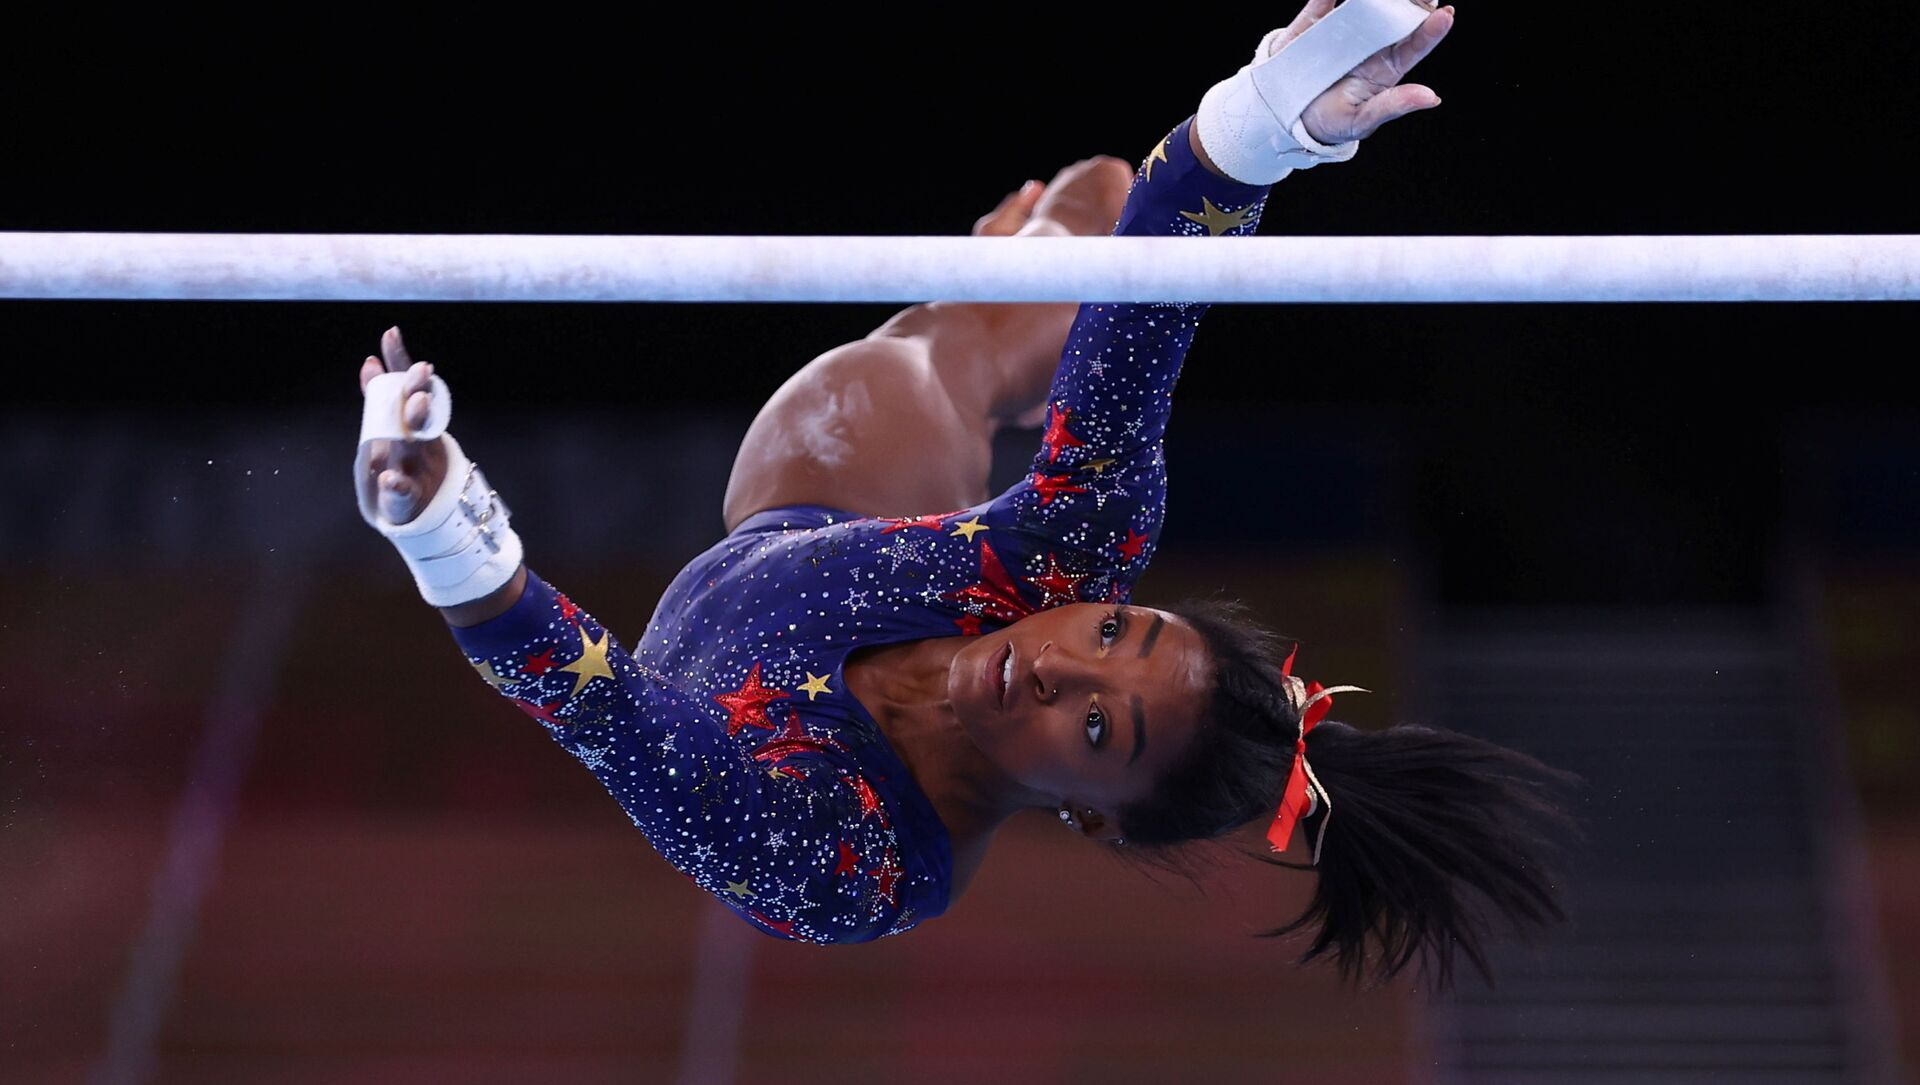 Tokyo 2020 Olympics - Gymnastics - Artistic - Women's Uneven Bars - Qualification - Ariake Gymnastics Centre, Tokyo, Japan - July 25, 2021. Simone Biles of the United States in action during the uneven bars REUTERS/Mike Blake/File photo  SEARCH OLYMPICS DAY 3 FOR TOKYO 2020 OLYMPICS EDITOR'S CHOICE, SEARCH REUTERS OLYMPICS TOPIX FOR ALL EDITOR'S CHOICE PICTURES. - Sputnik International, 1920, 25.07.2021